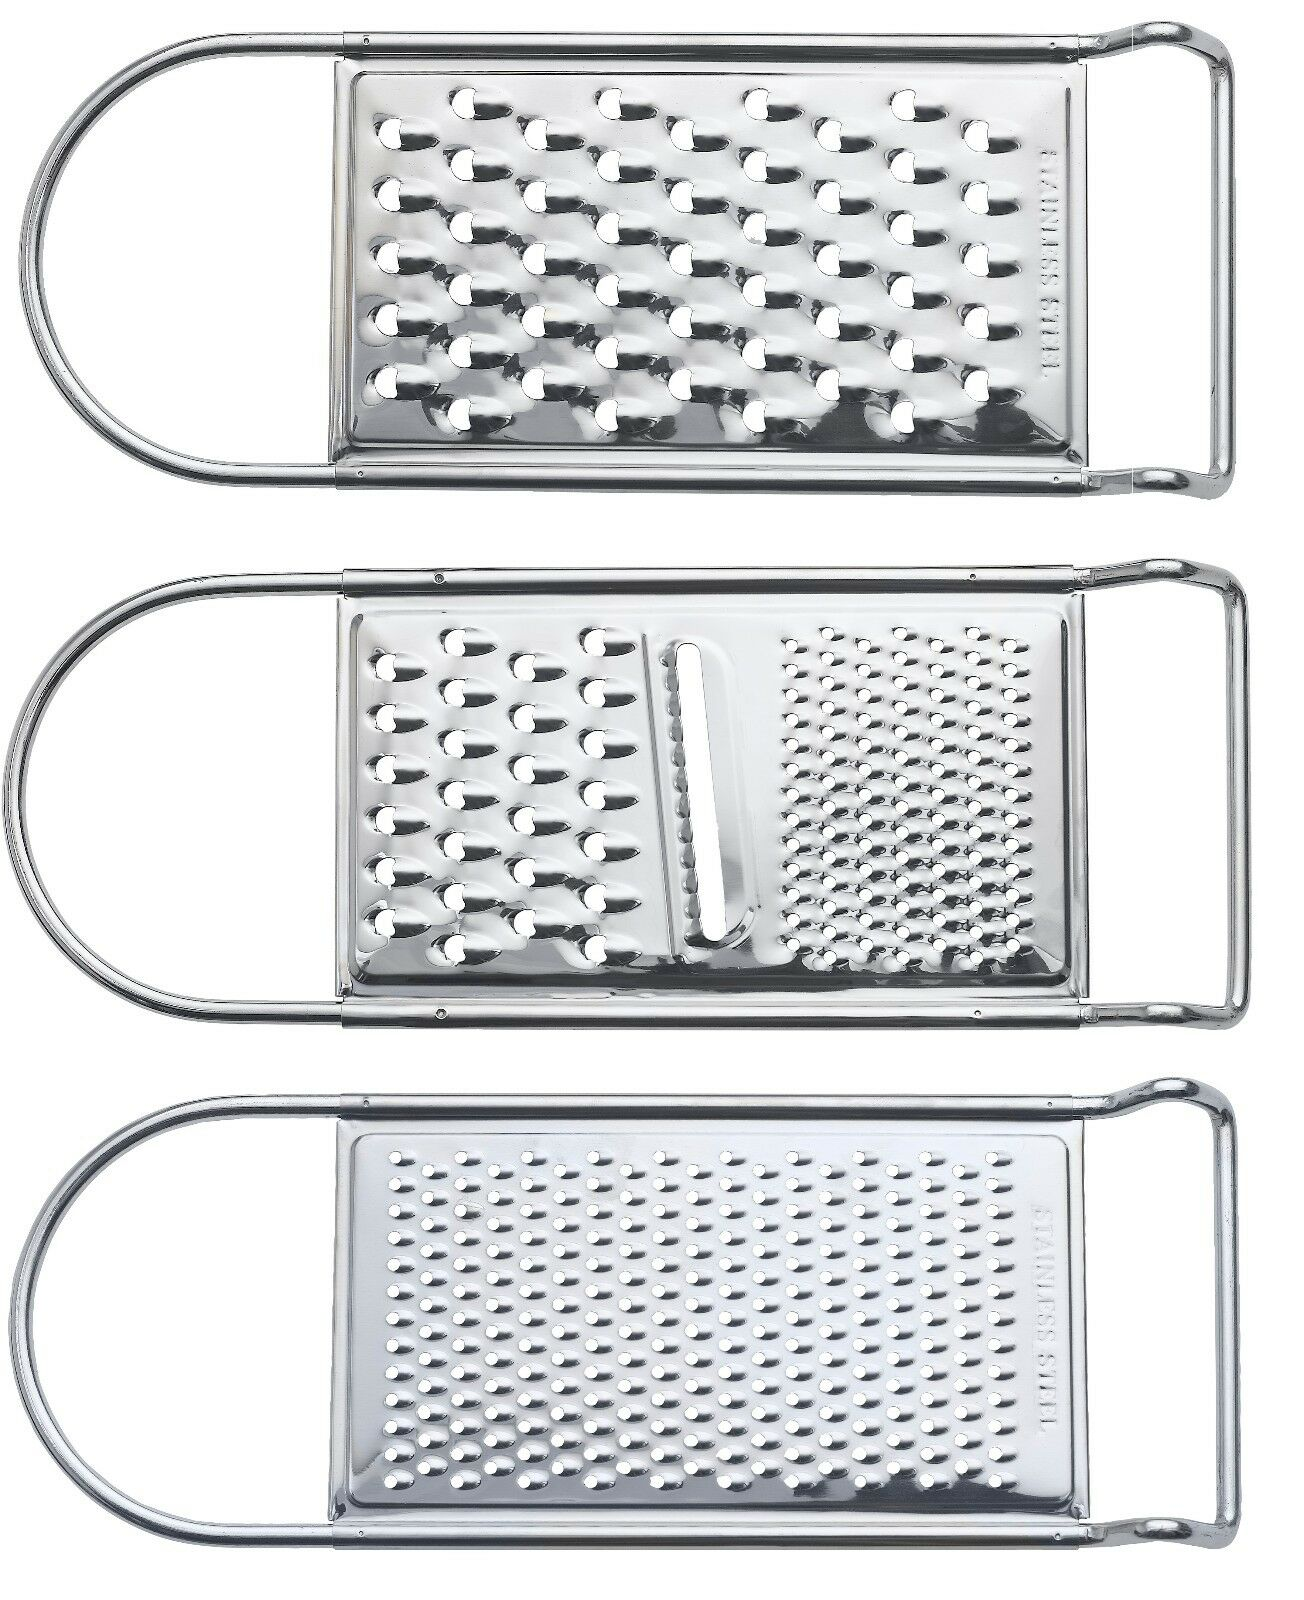 Microplane 3Ional Coarse Grater Stainless Steel Kitchen Cooking Grip Large Safe